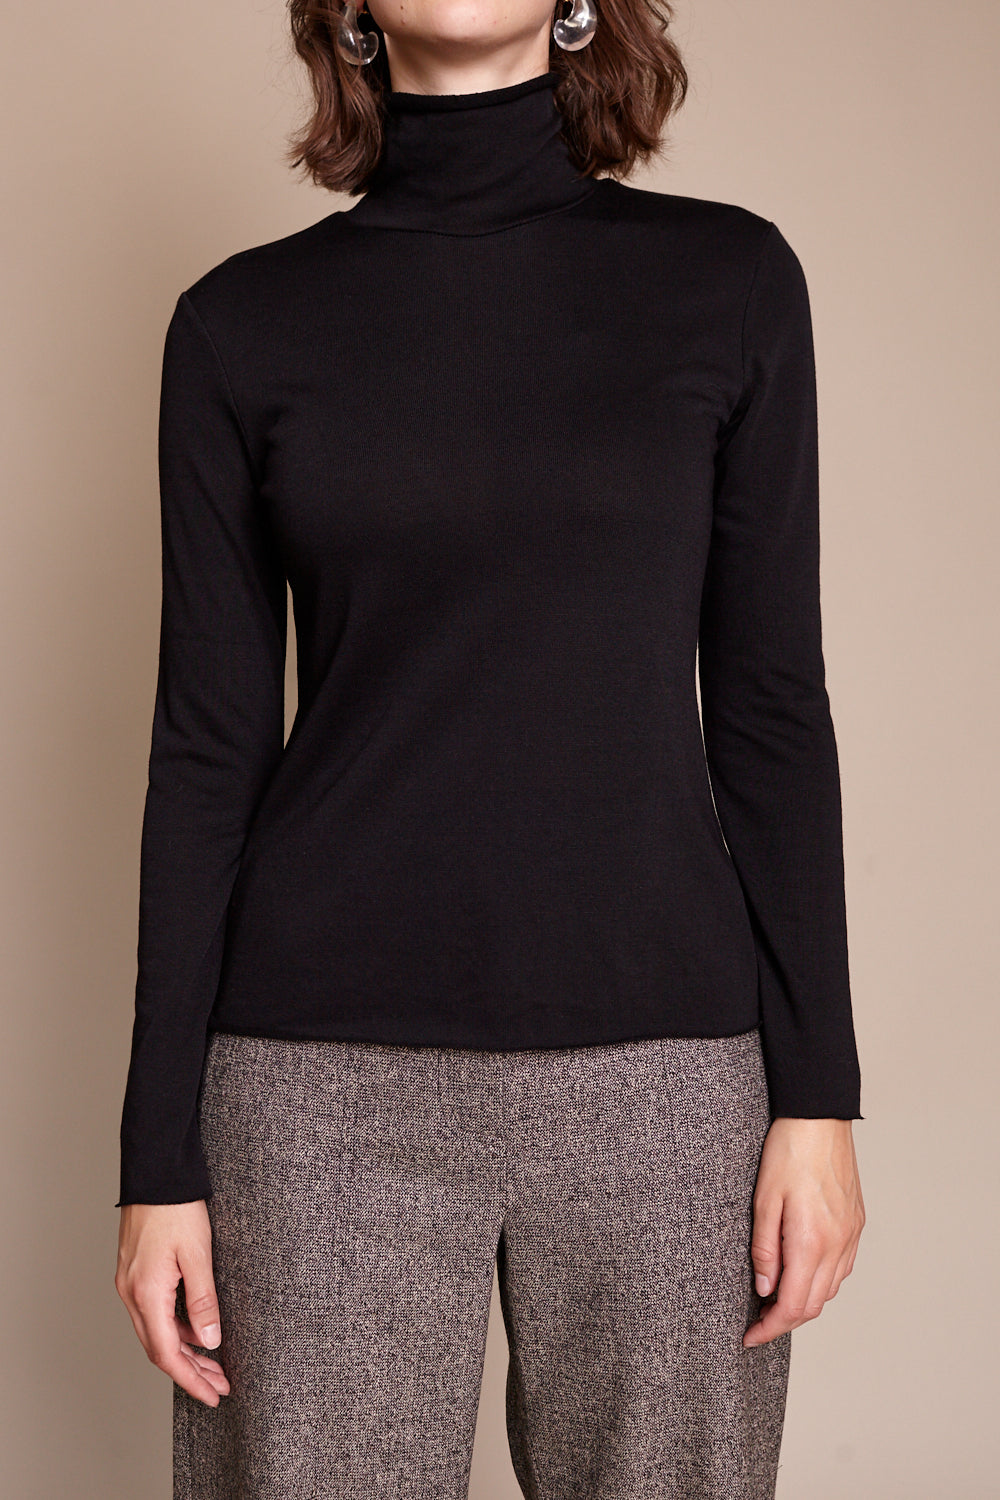 No.6 Gloria Turtleneck in Black - Vert & Vogue